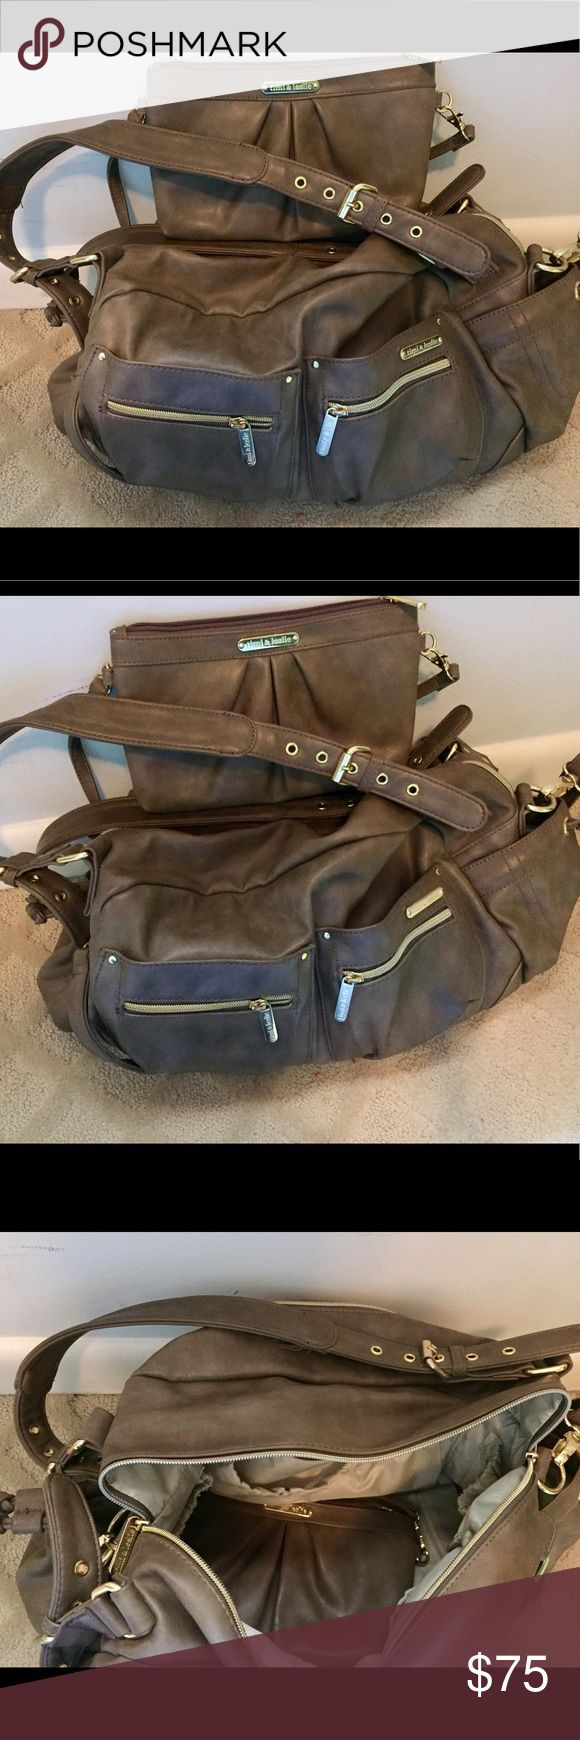 """Timi & Leslie """" Jessica """" diaper bag Timi & Leslie diaper bag with clutch insert. Color is Taupe. Timi & Leslie Bags Baby Bags"""